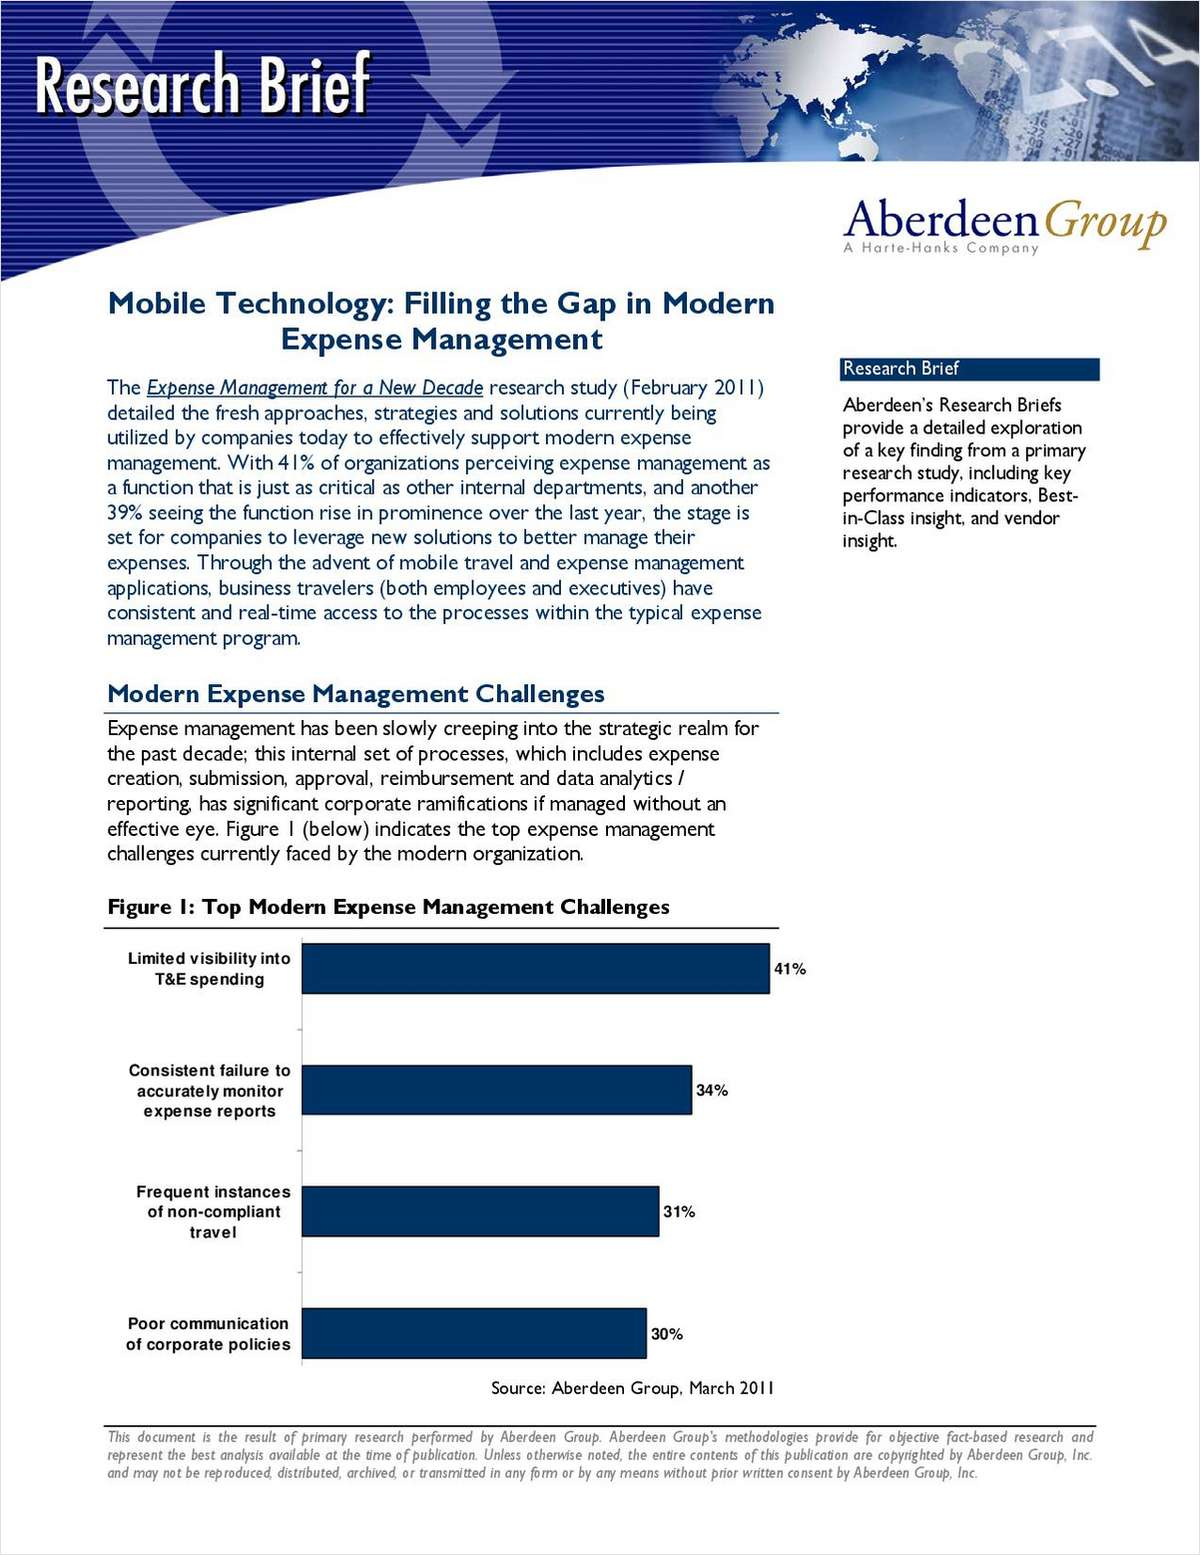 Mobile Technology: Filling the Gap in Modern Expense Management